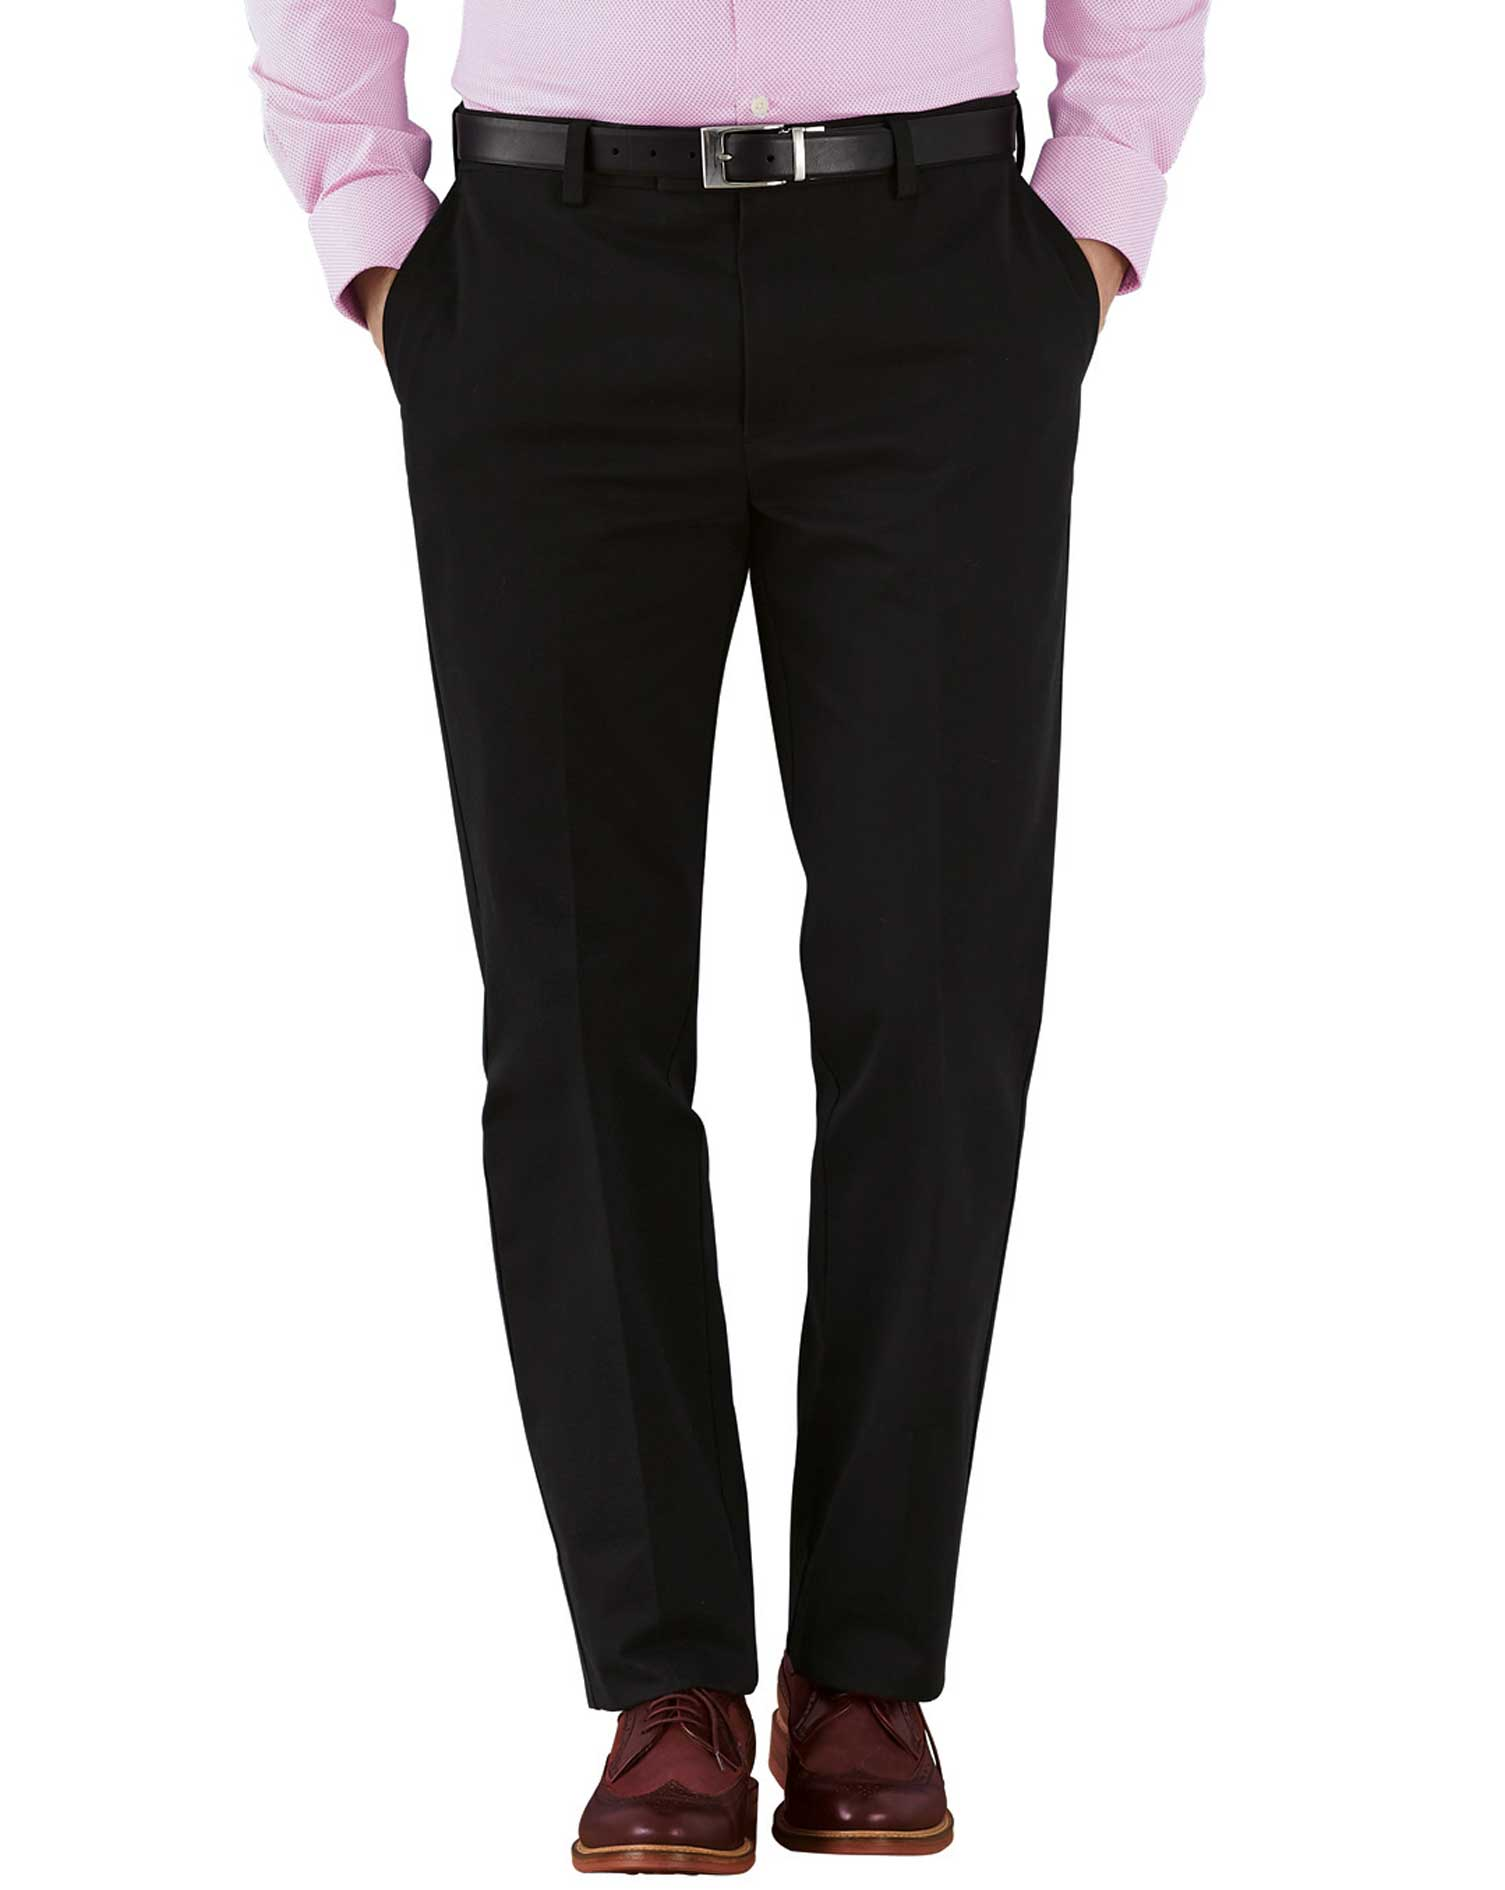 Black Slim Fit Flat Front Non-Iron Cotton Chino Trousers Size W34 L38 by Charles Tyrwhitt